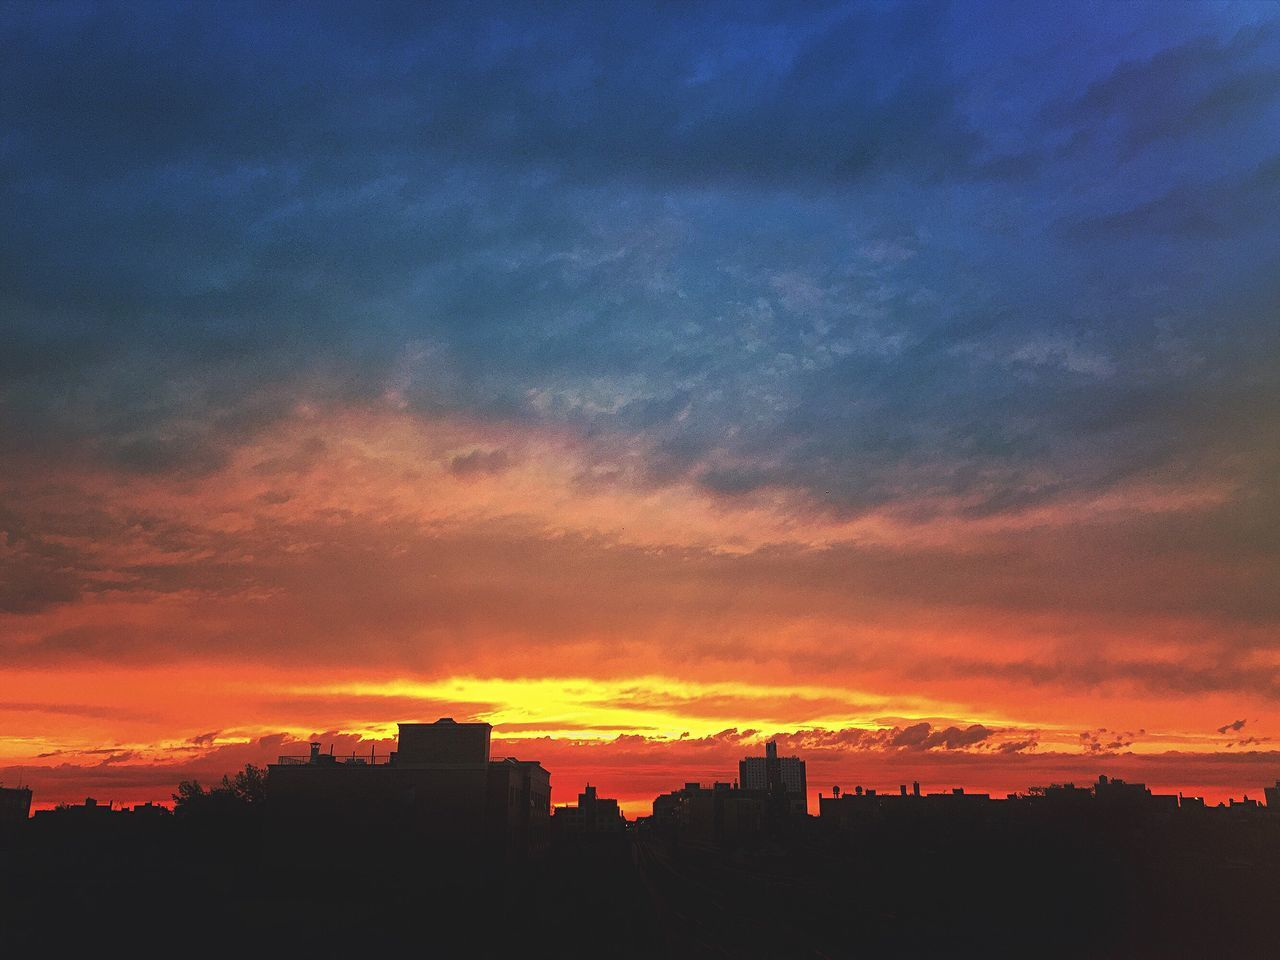 SILHOUETTE OF CITYSCAPE AGAINST CLOUDY SKY DURING SUNSET